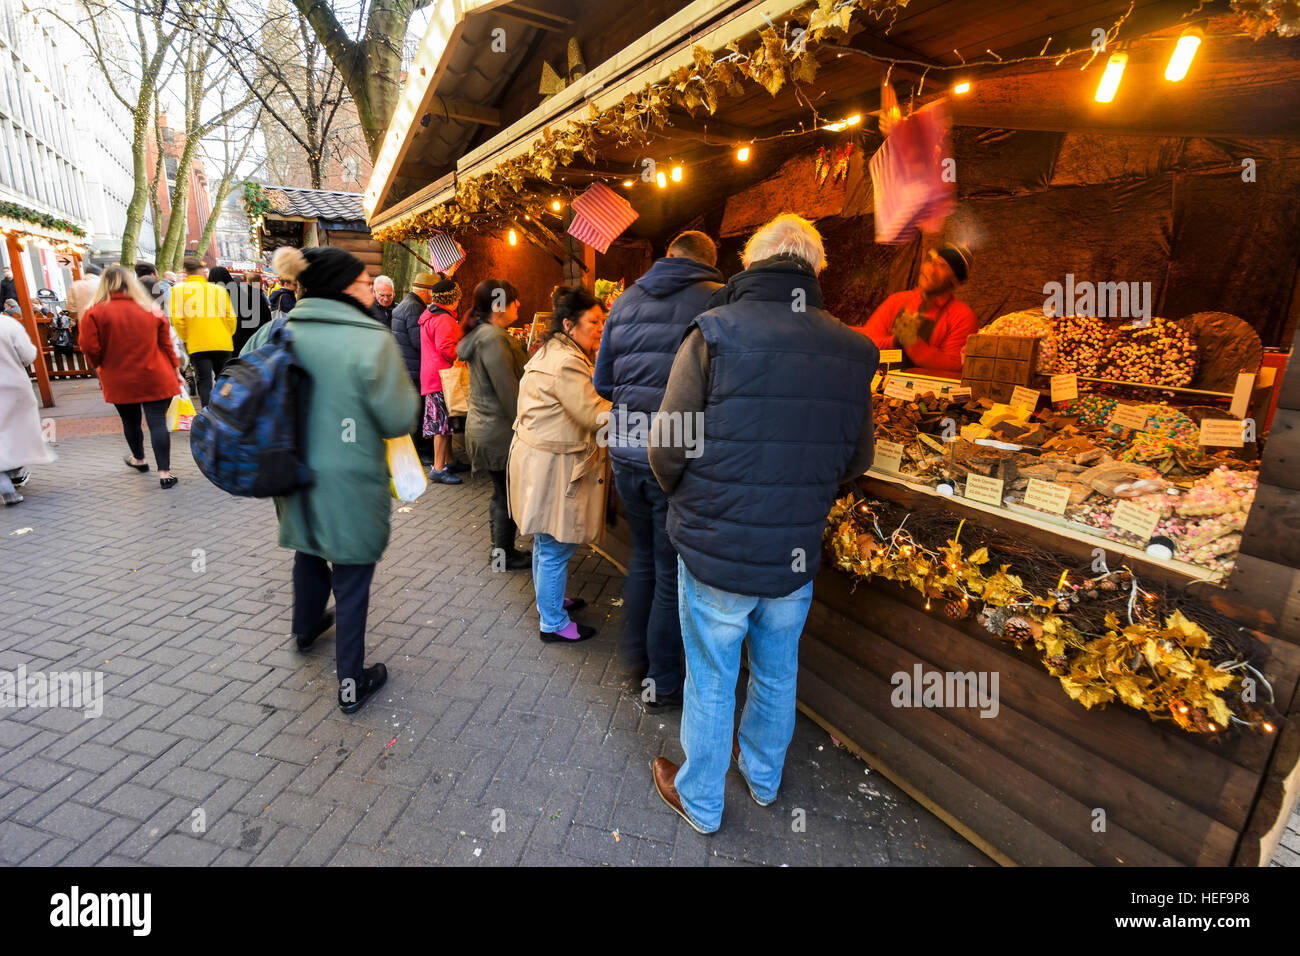 Christmas Market in Manchester city centre. - Stock Image